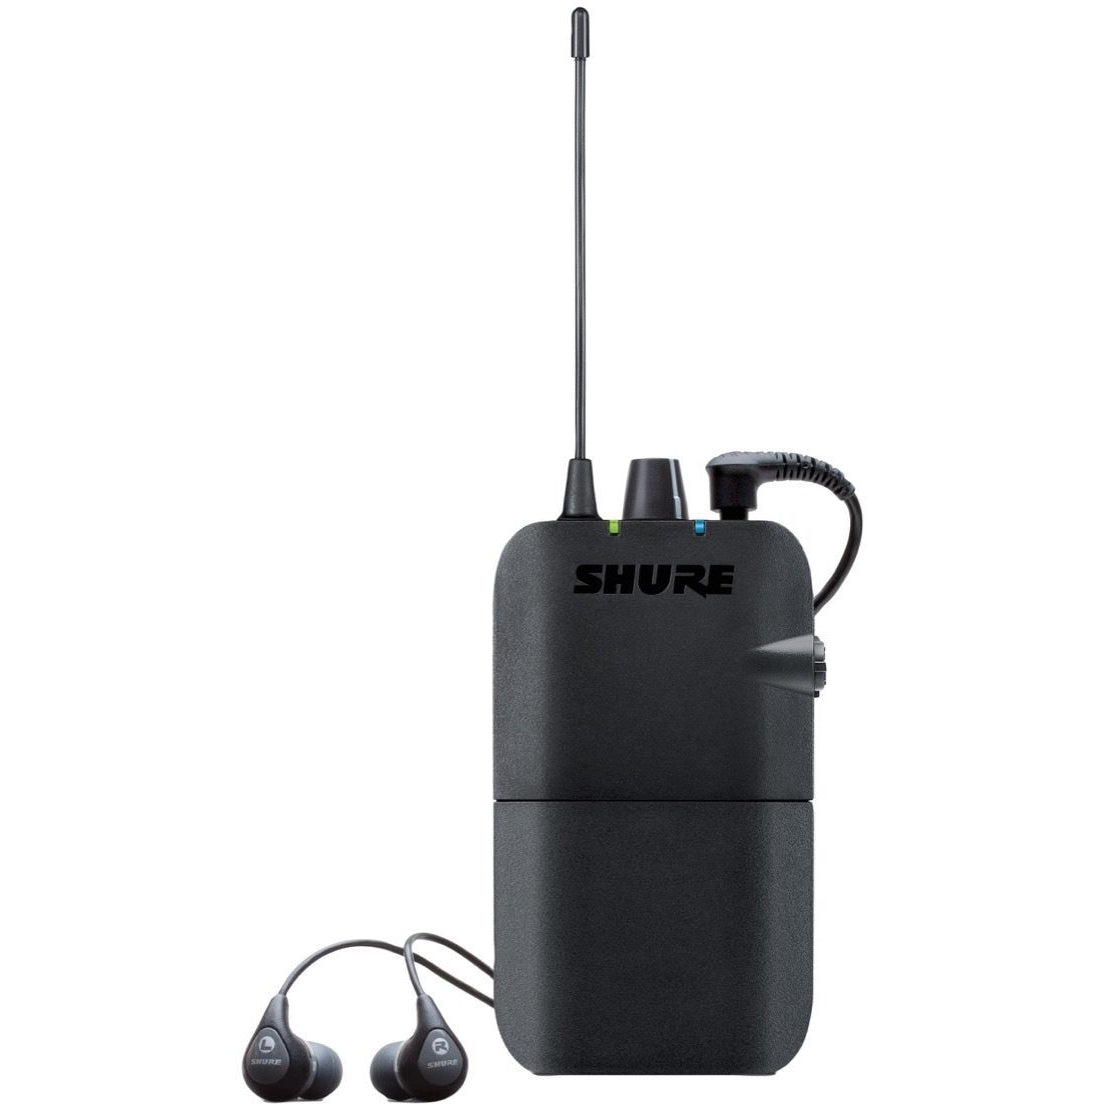 Shure PSM300 IEM Wireless In-Ear Monitor System with SE112 Earphones, Band J13 (566.175 - 589.850 MHz)